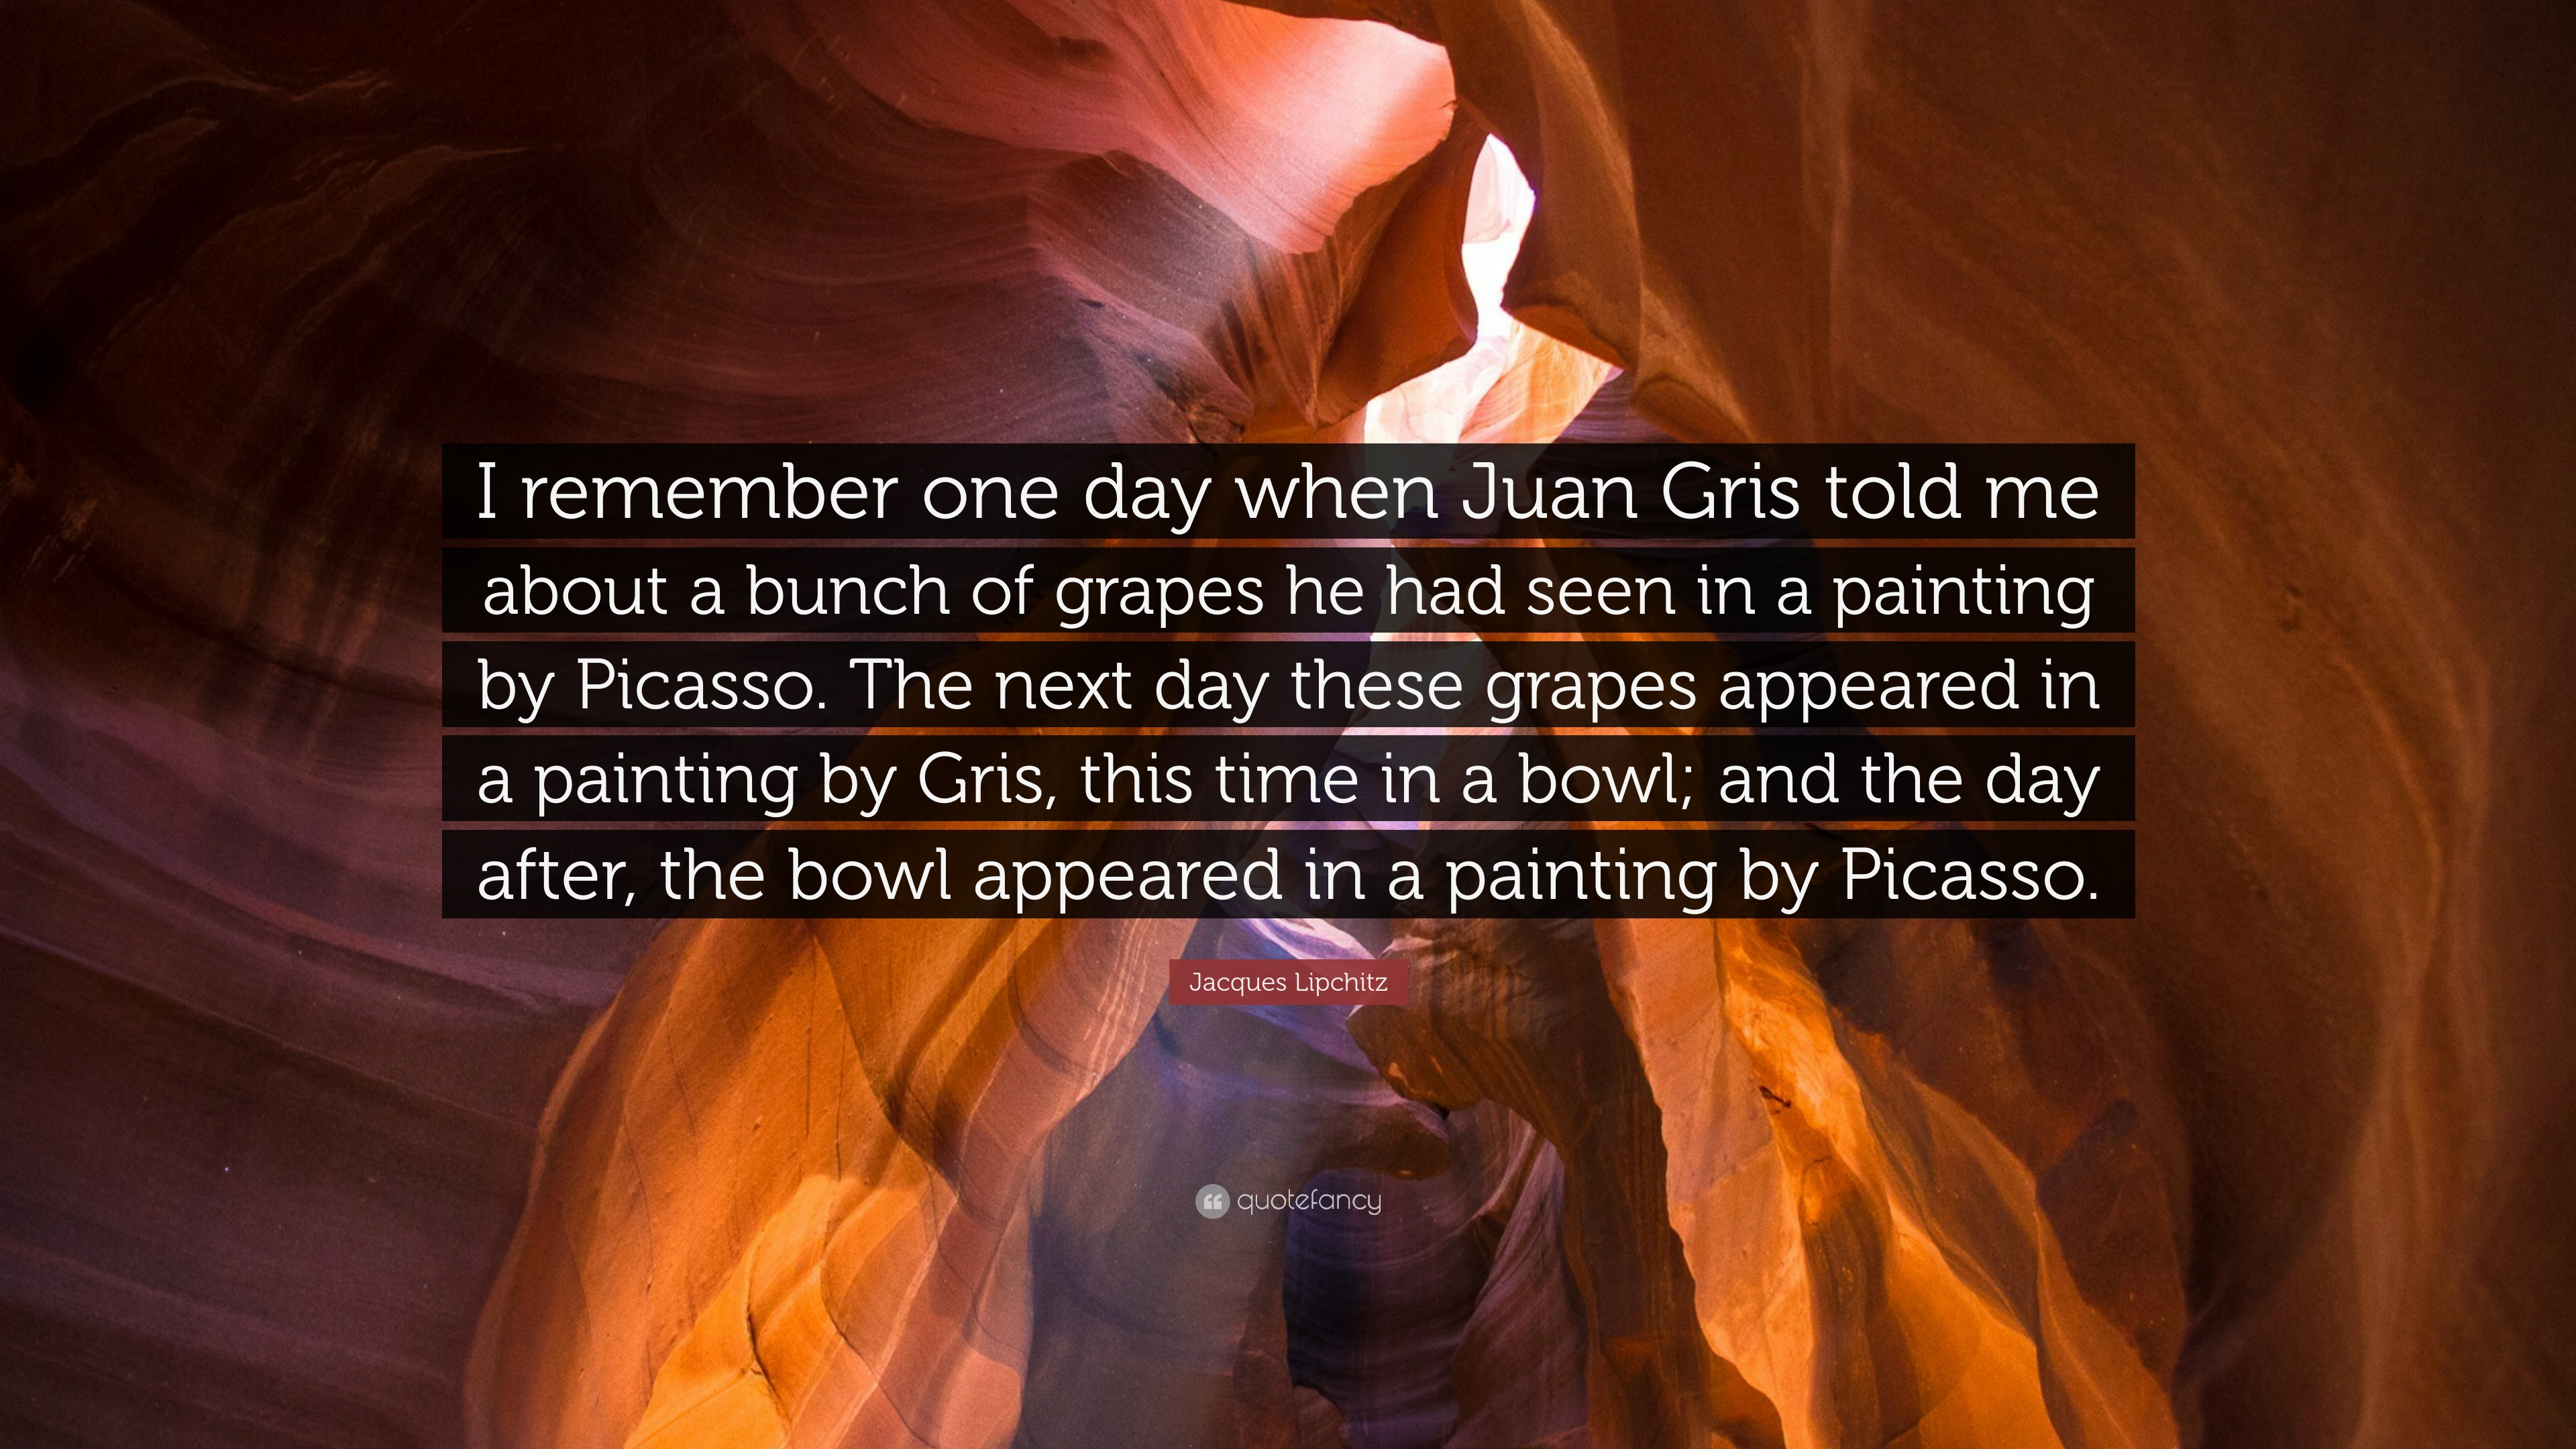 "jacques lipchitz quote ""i remember one day when juan gris told me"